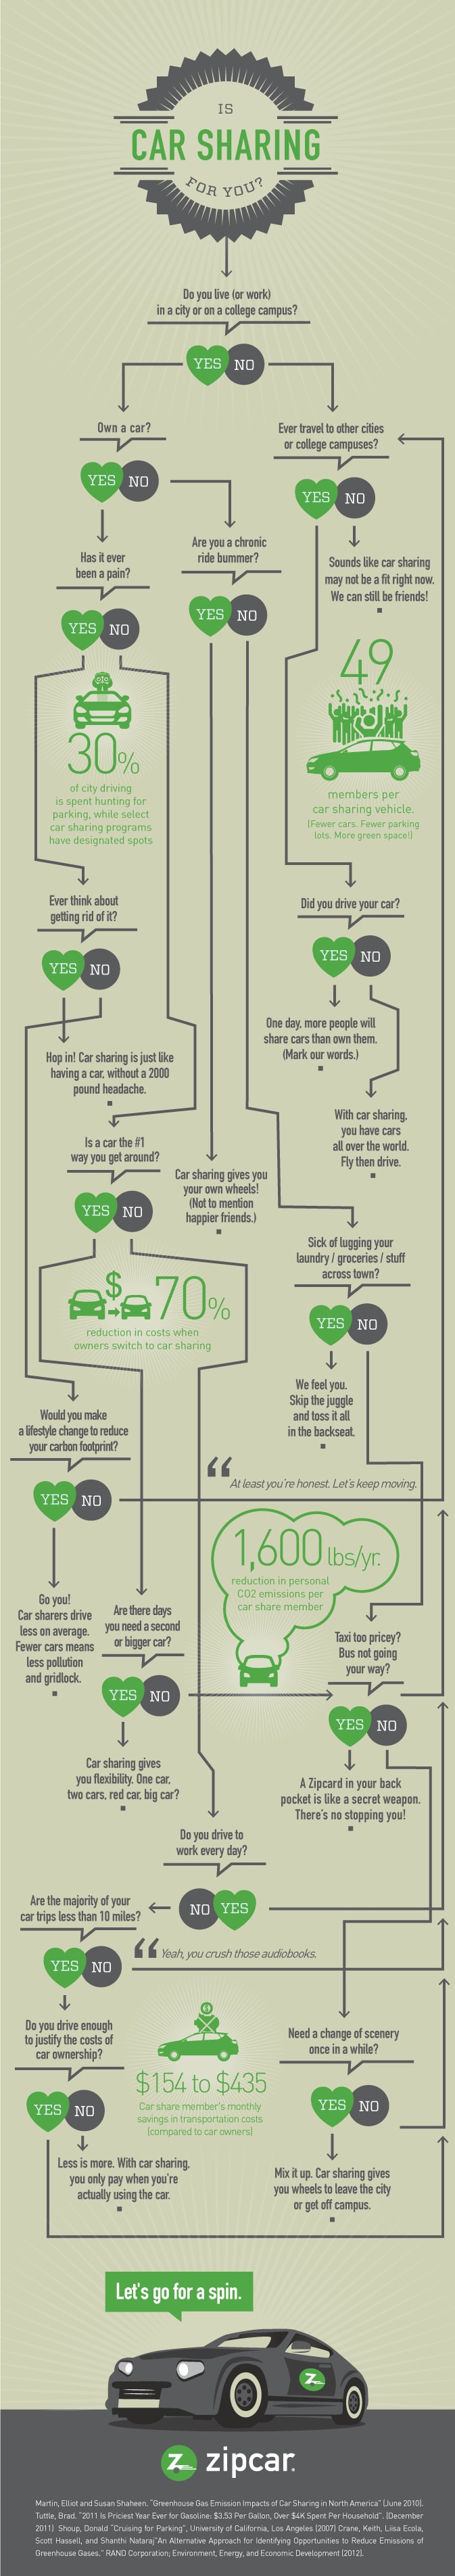 is car sharing for you? decision guide infographic